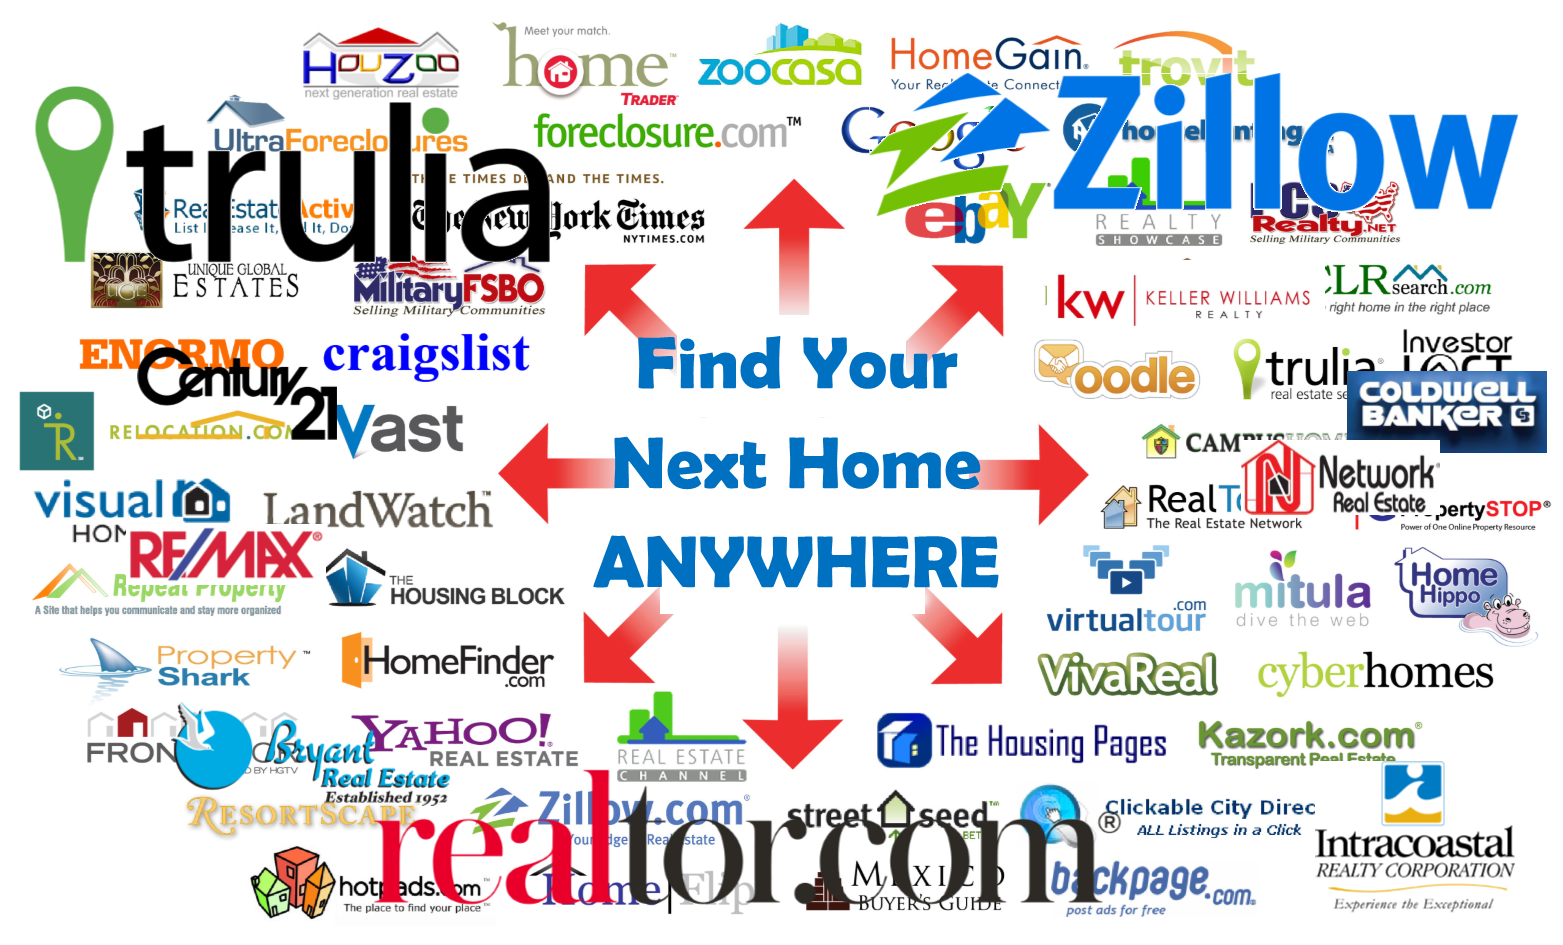 Image showing where to find a home and get a home buyer rebate